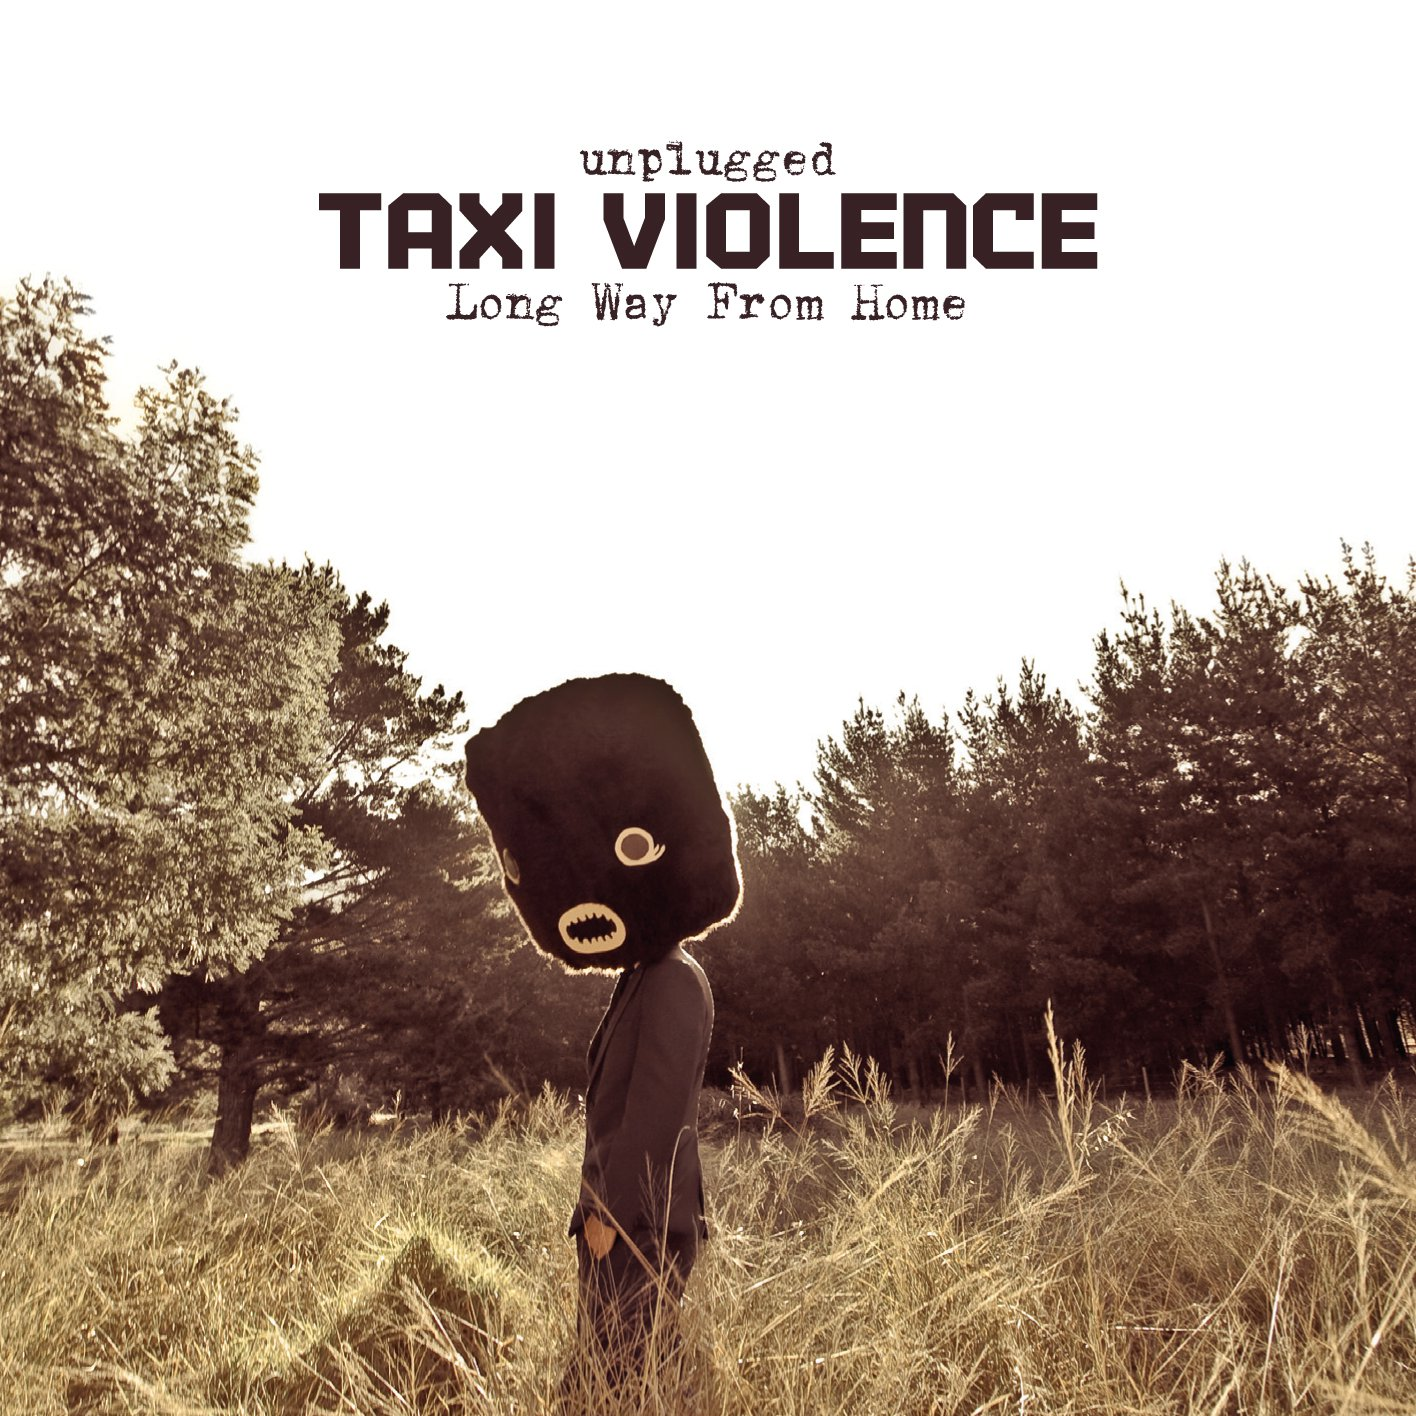 Taxi Violence Unplugged: Long Way From Home